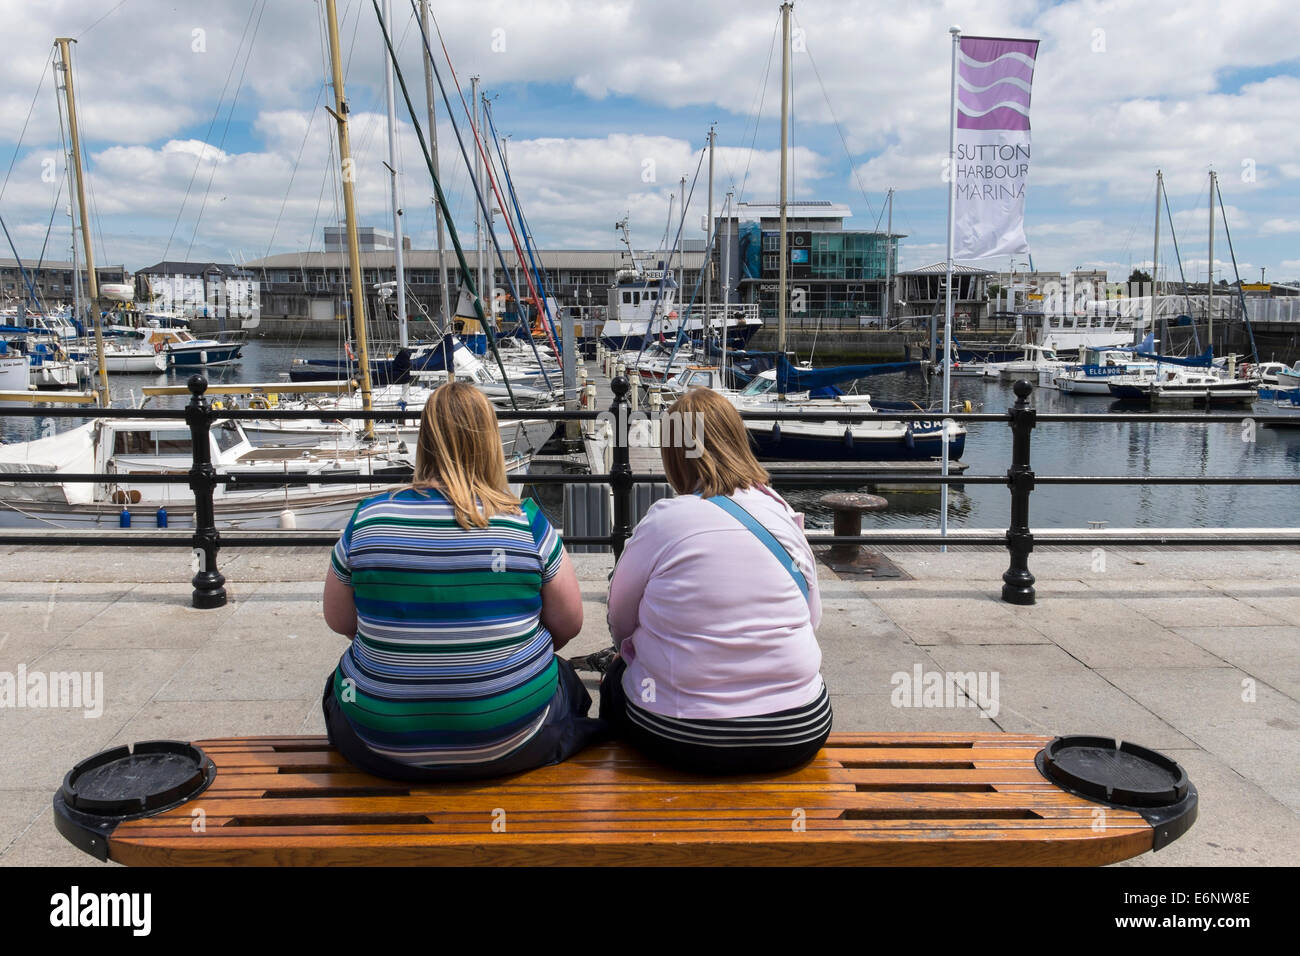 Two overweight women sitting on a bench on Plymouth Barbican, Plymouth, Devon, England, UK - Stock Image